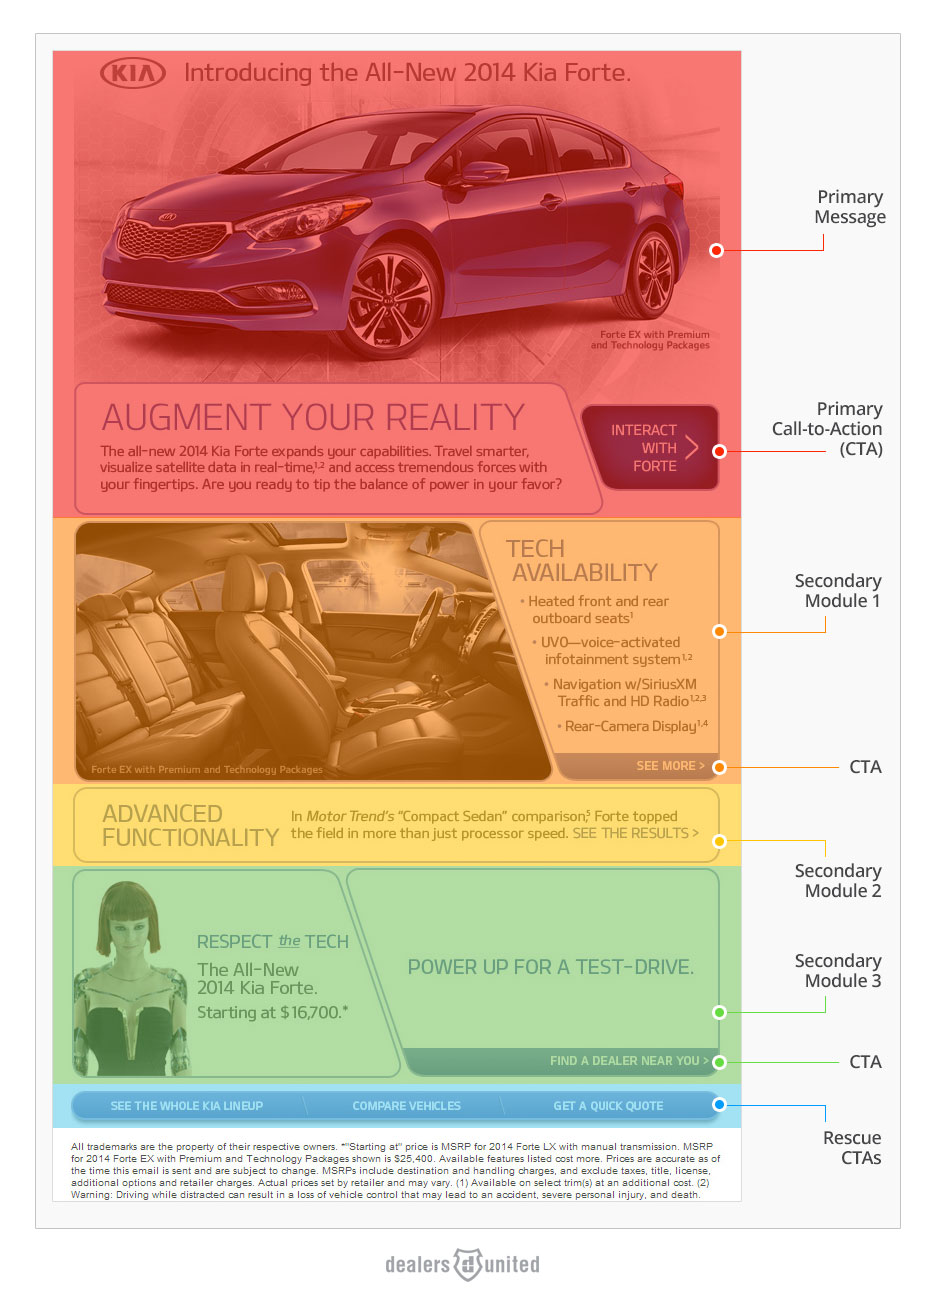 Auto Dealer Email Campaign Primary and Secondary Content